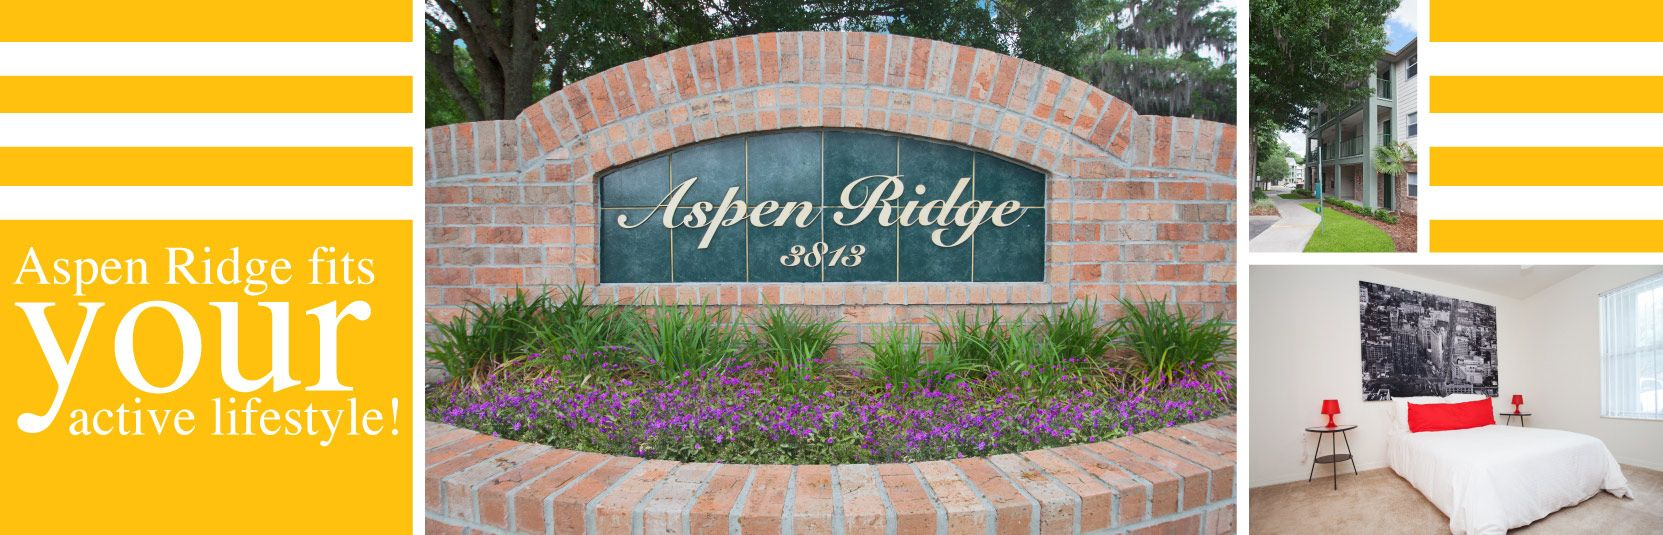 Our spacious 1 bedroom and 3 bedroom apartments make Aspen